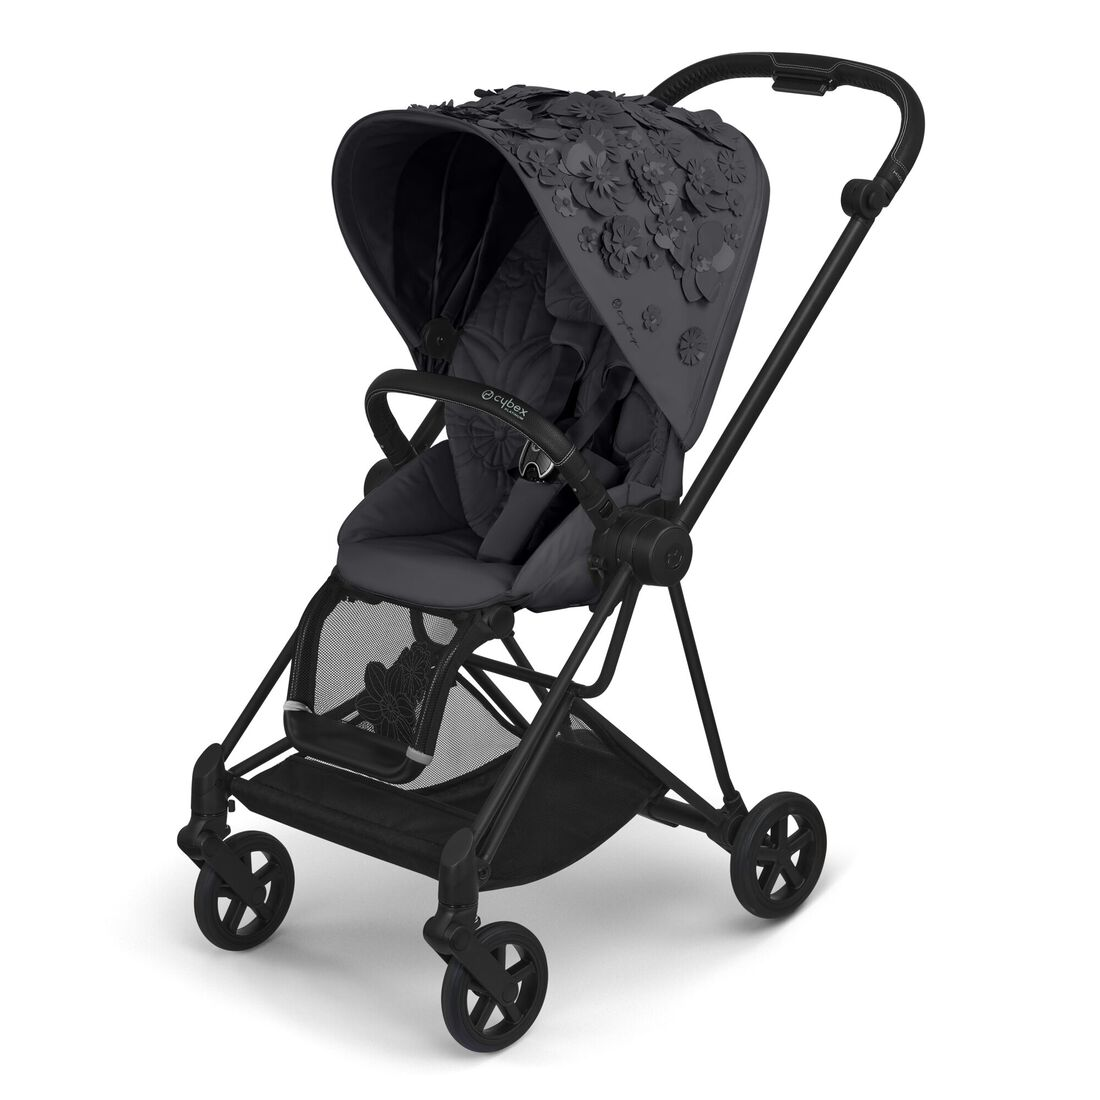 CYBEX Mios Seat Pack - Dream Grey in Dream Grey large image number 2